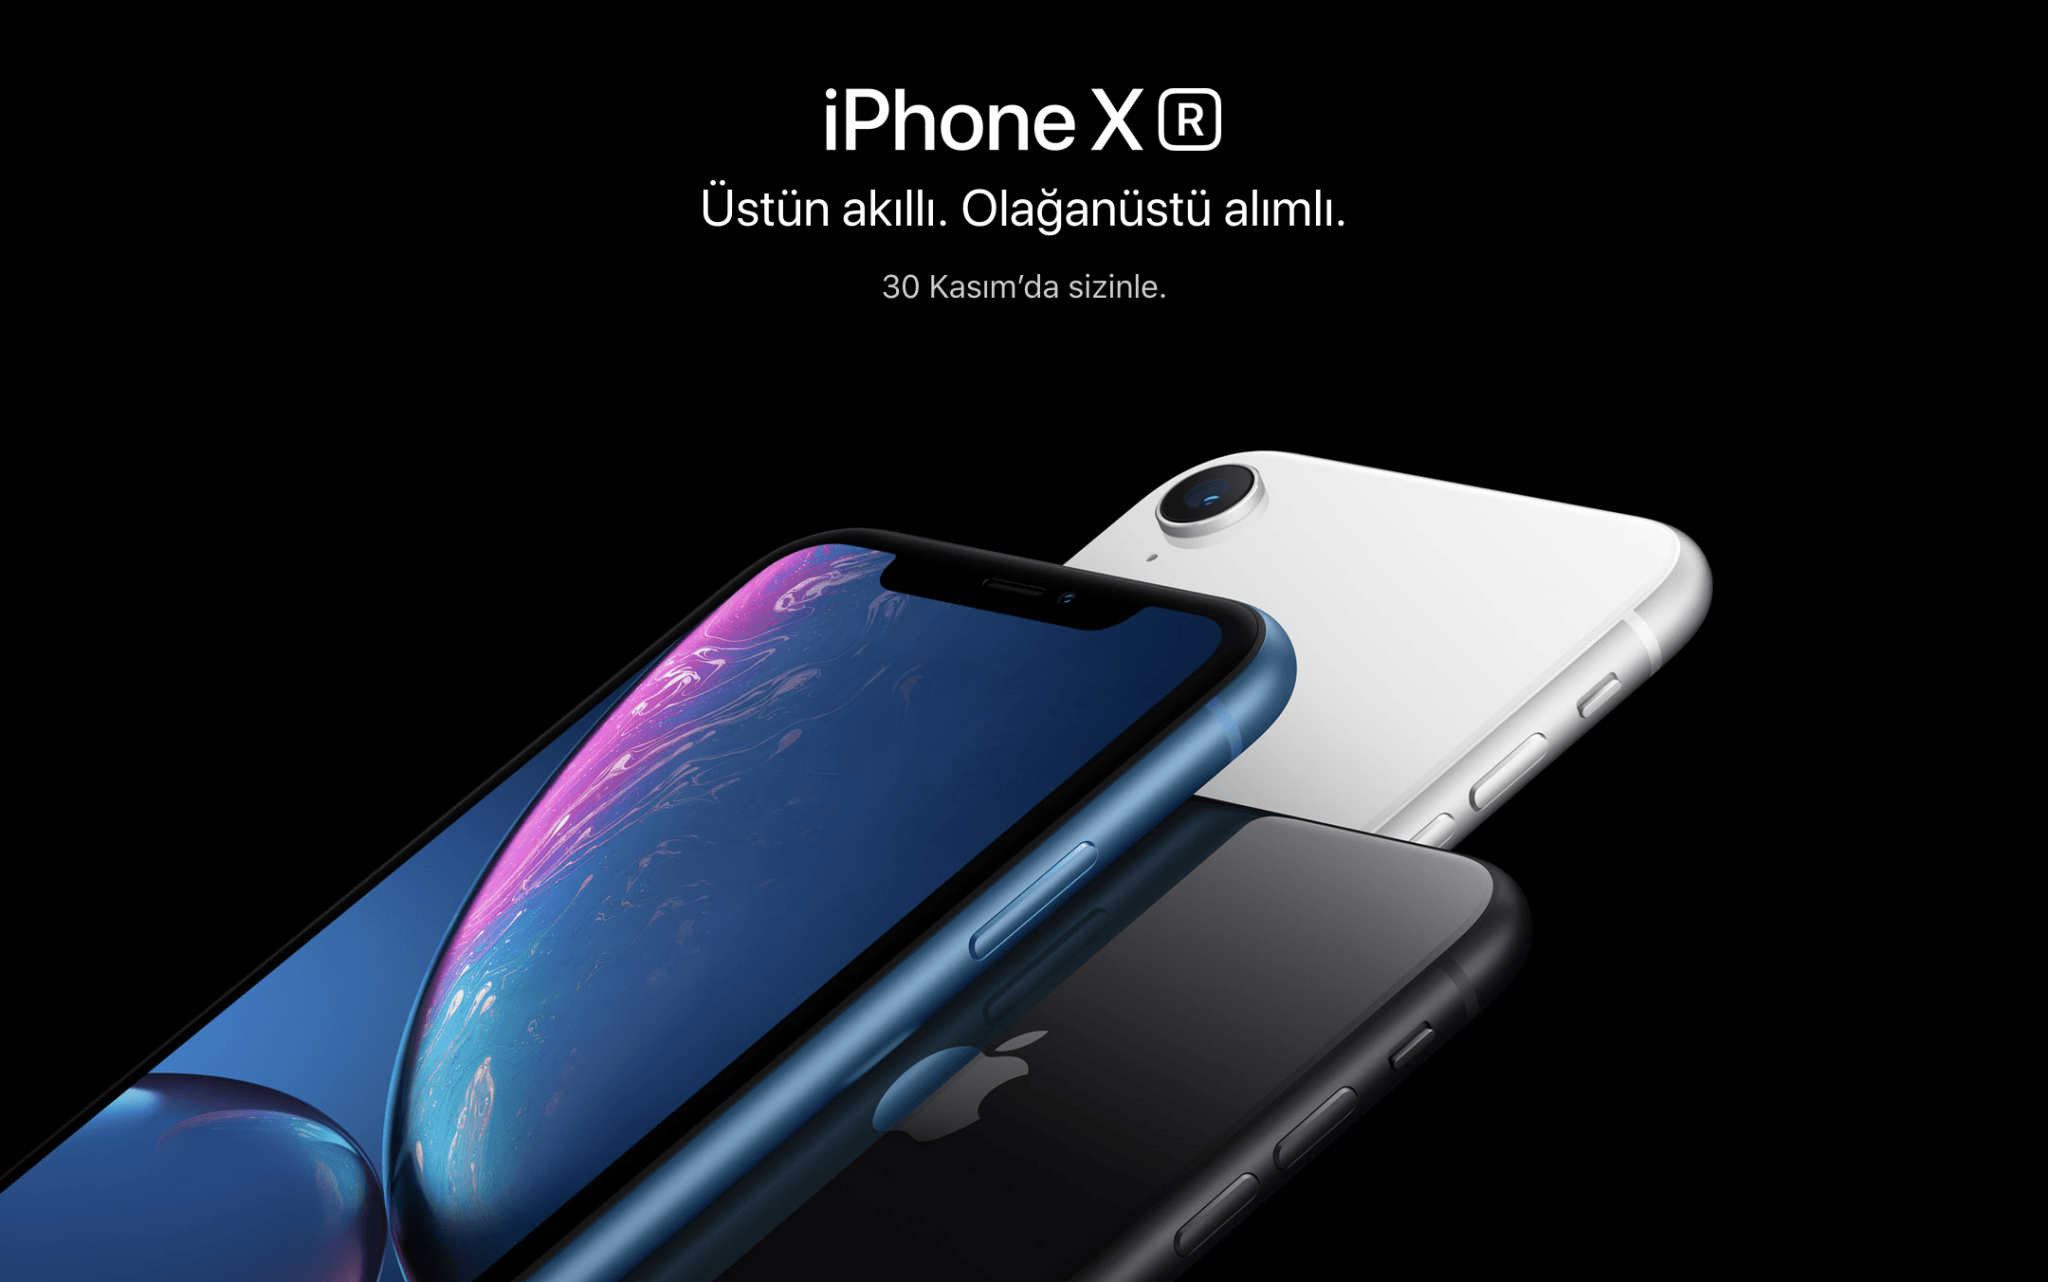 iphone xr türkiye